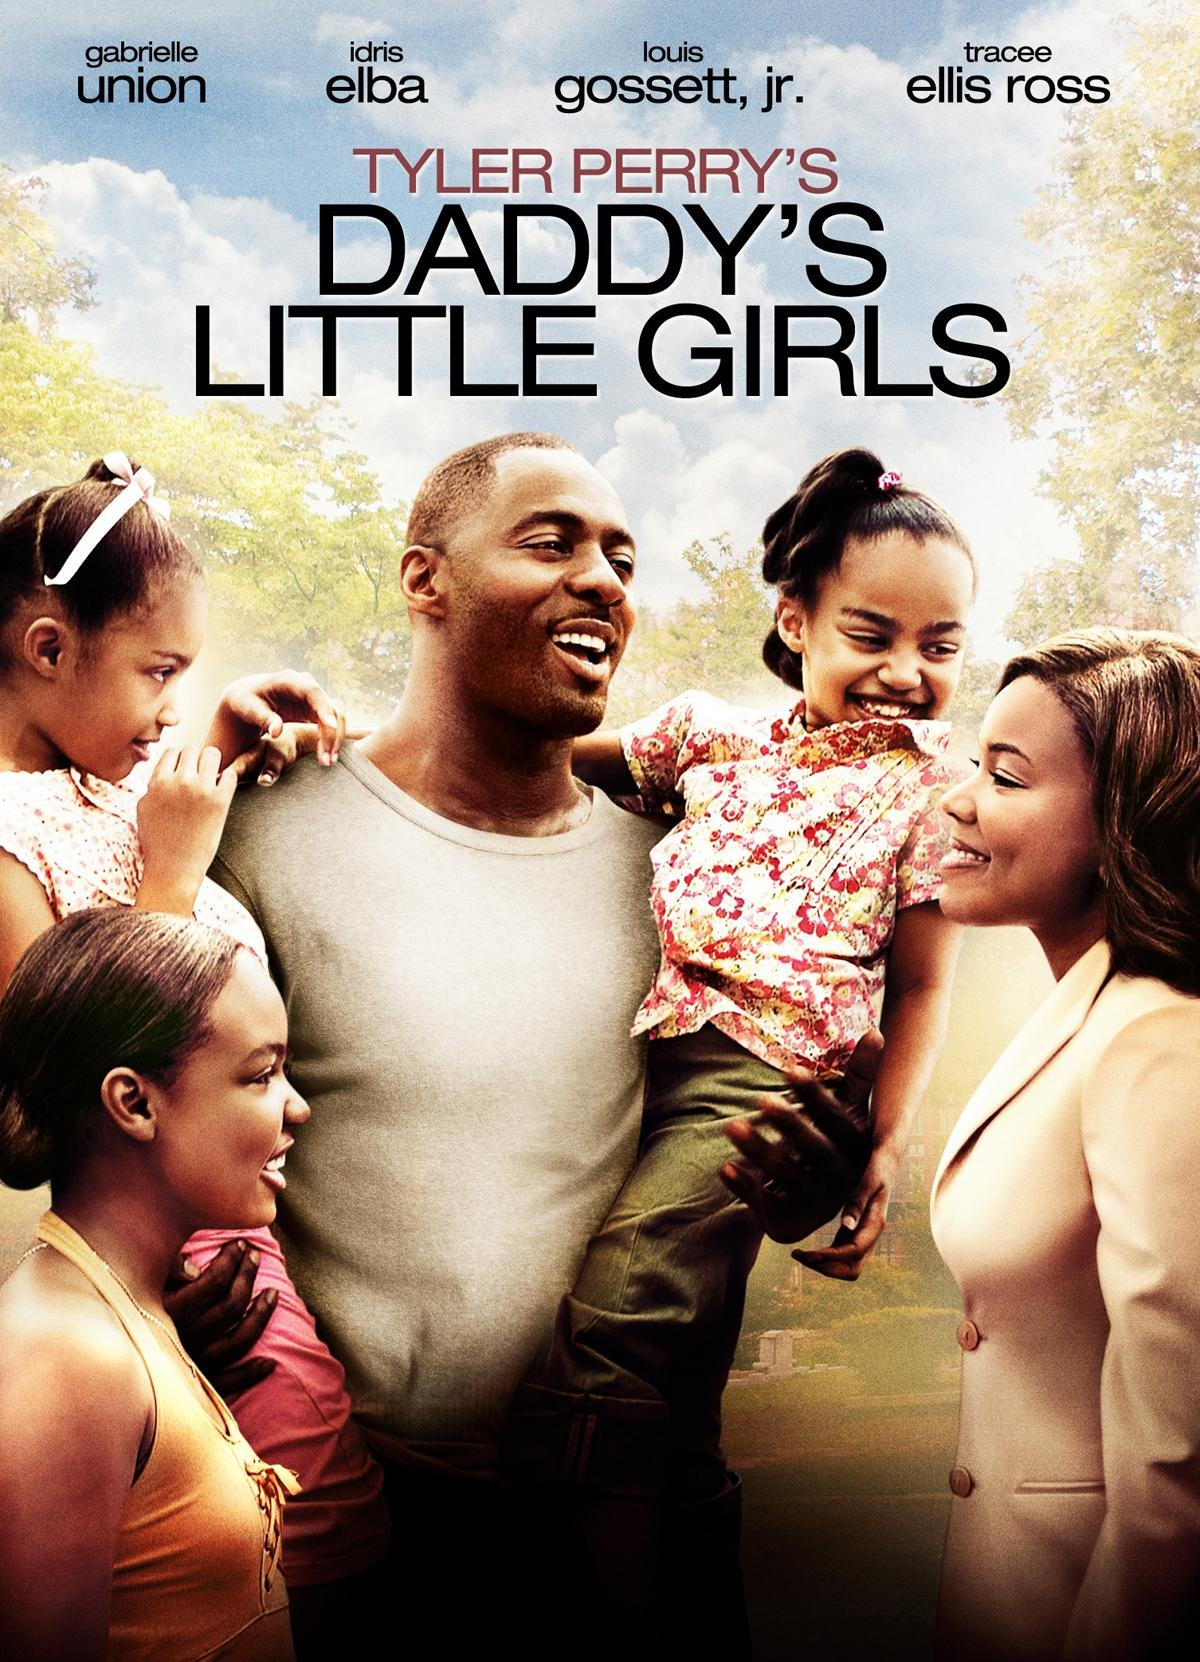 daddys little girl tyler perry watch online free